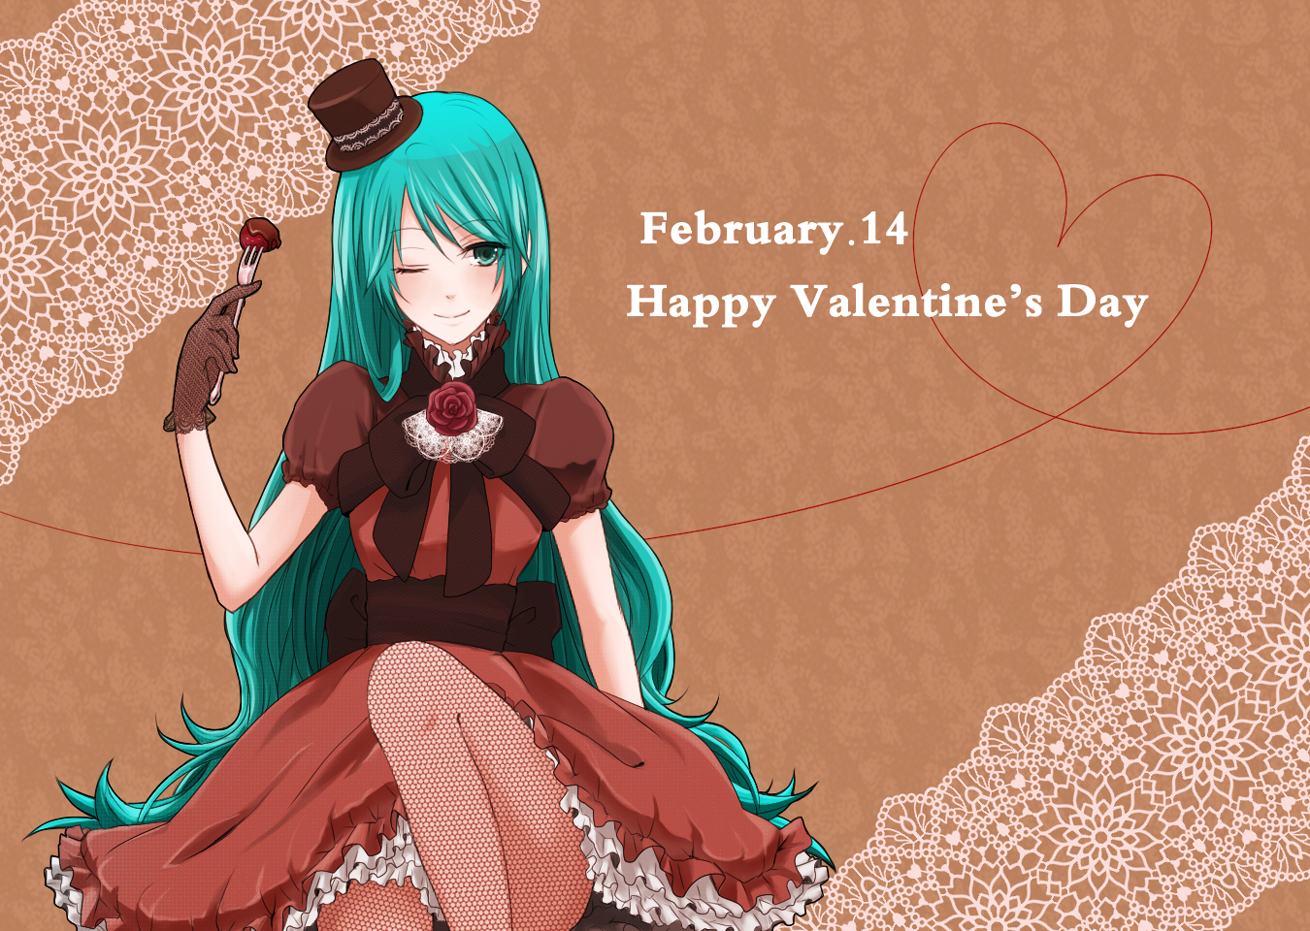 Anime valentine 39 s day wallpaper wallpapersafari - Happy valentines day anime ...